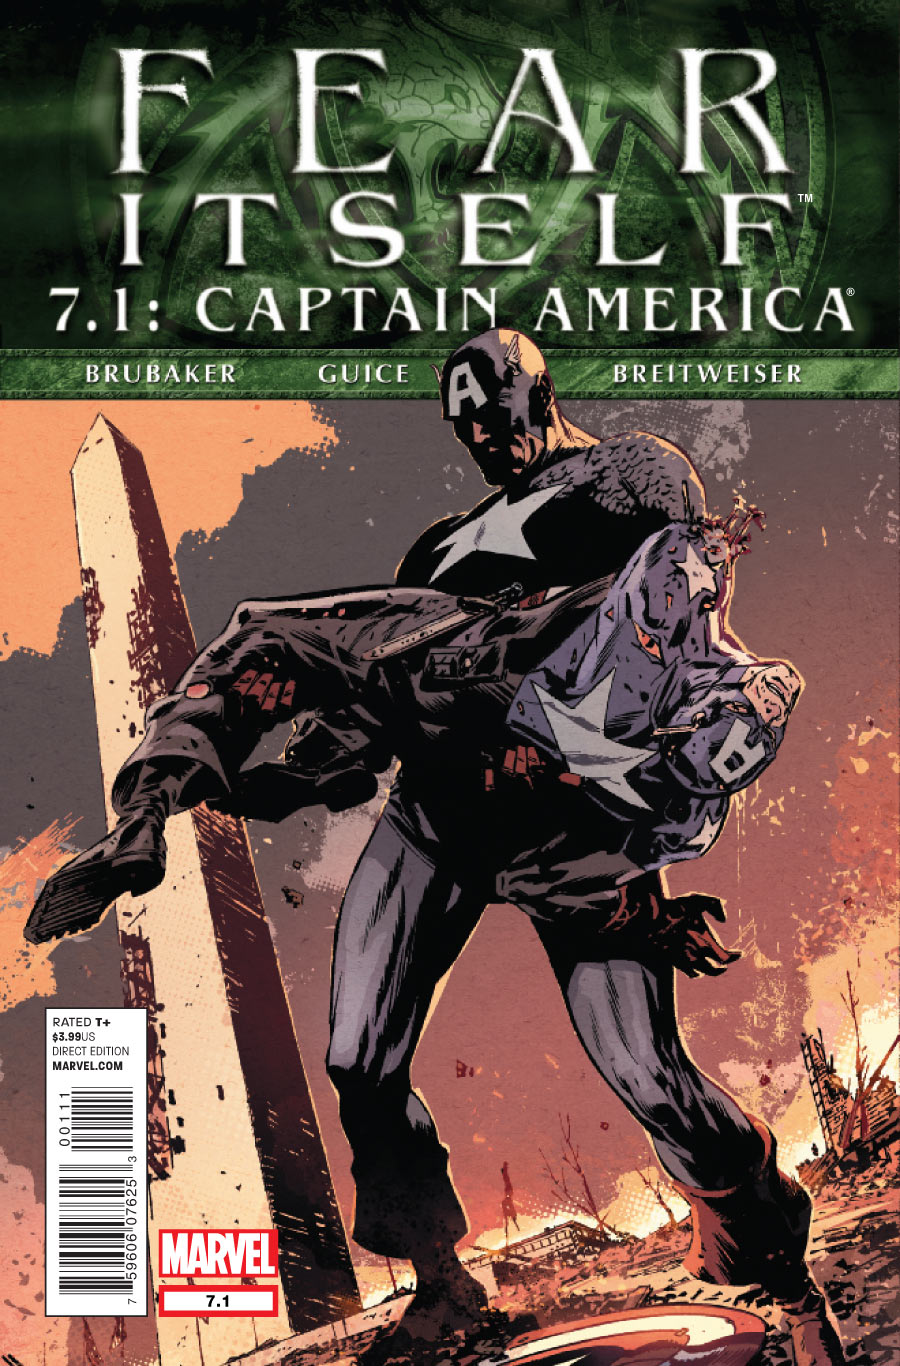 Copertina di Fear Itself 7.1 del 2012, di Butch Guice e Elizabeth Breitweiser